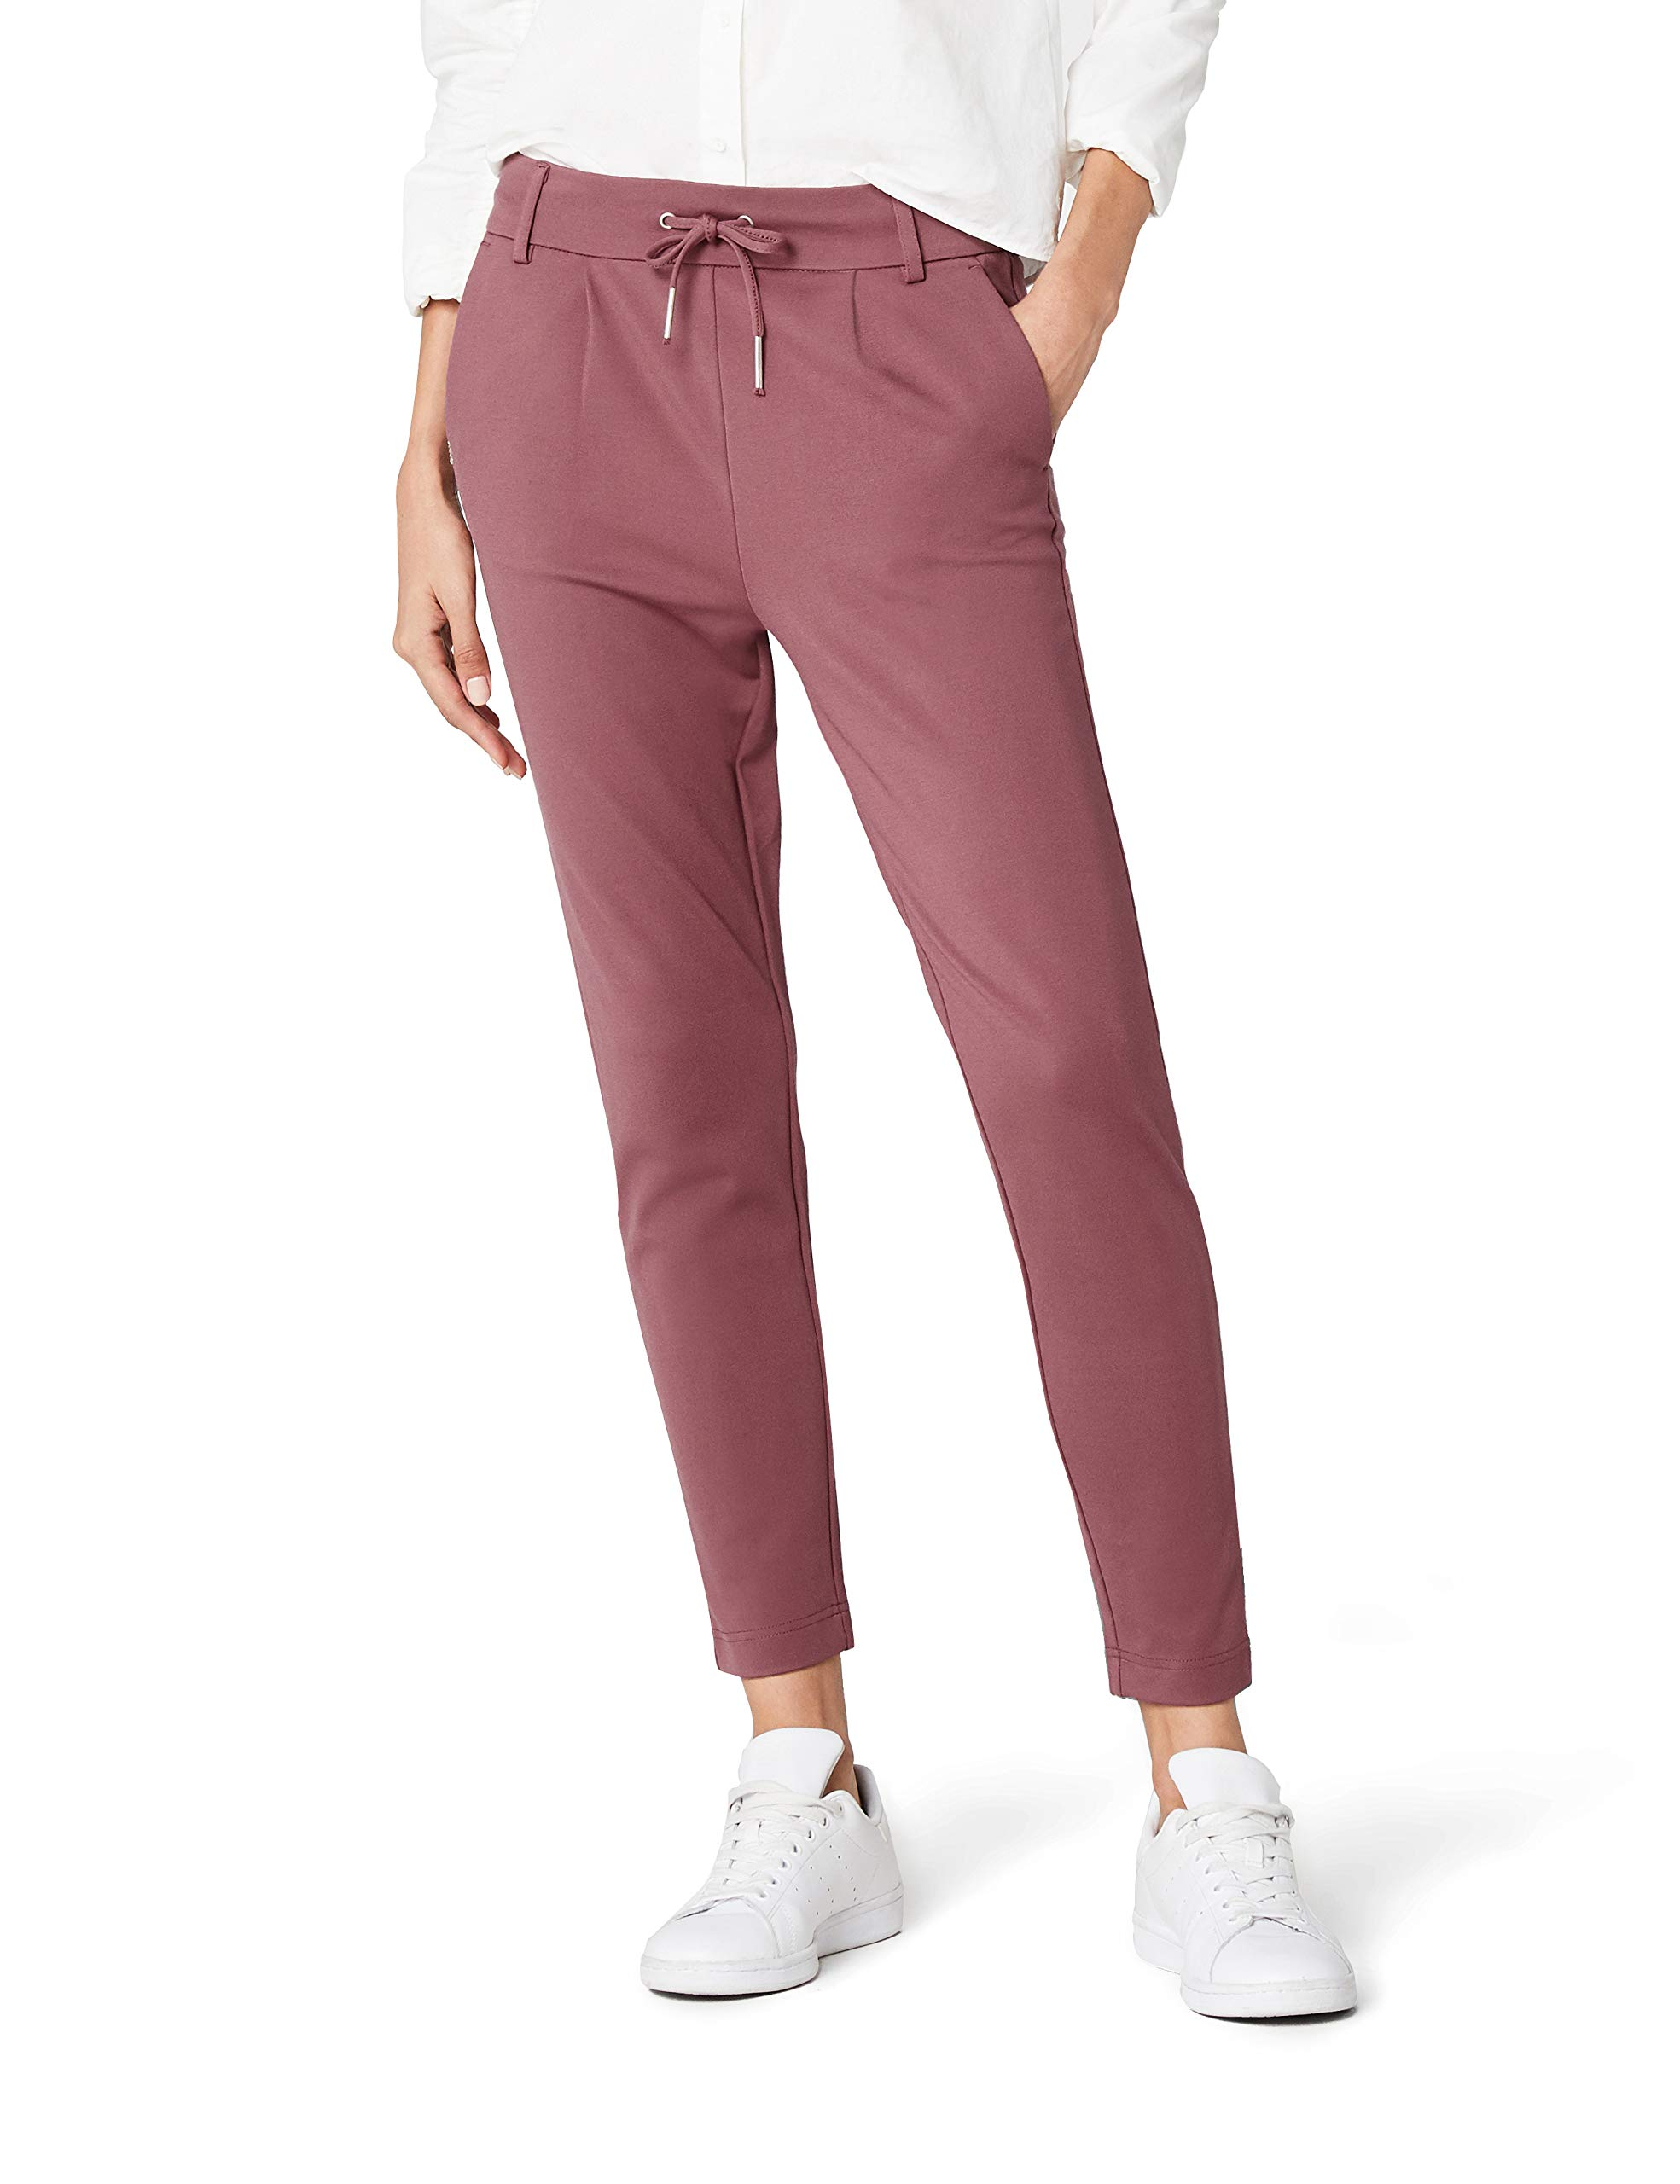 1b4f30161d5c1 ONLY Damen Hose Onlpoptrash Easy Colour Pant Pnt Noos, Weiß (Cloud ...